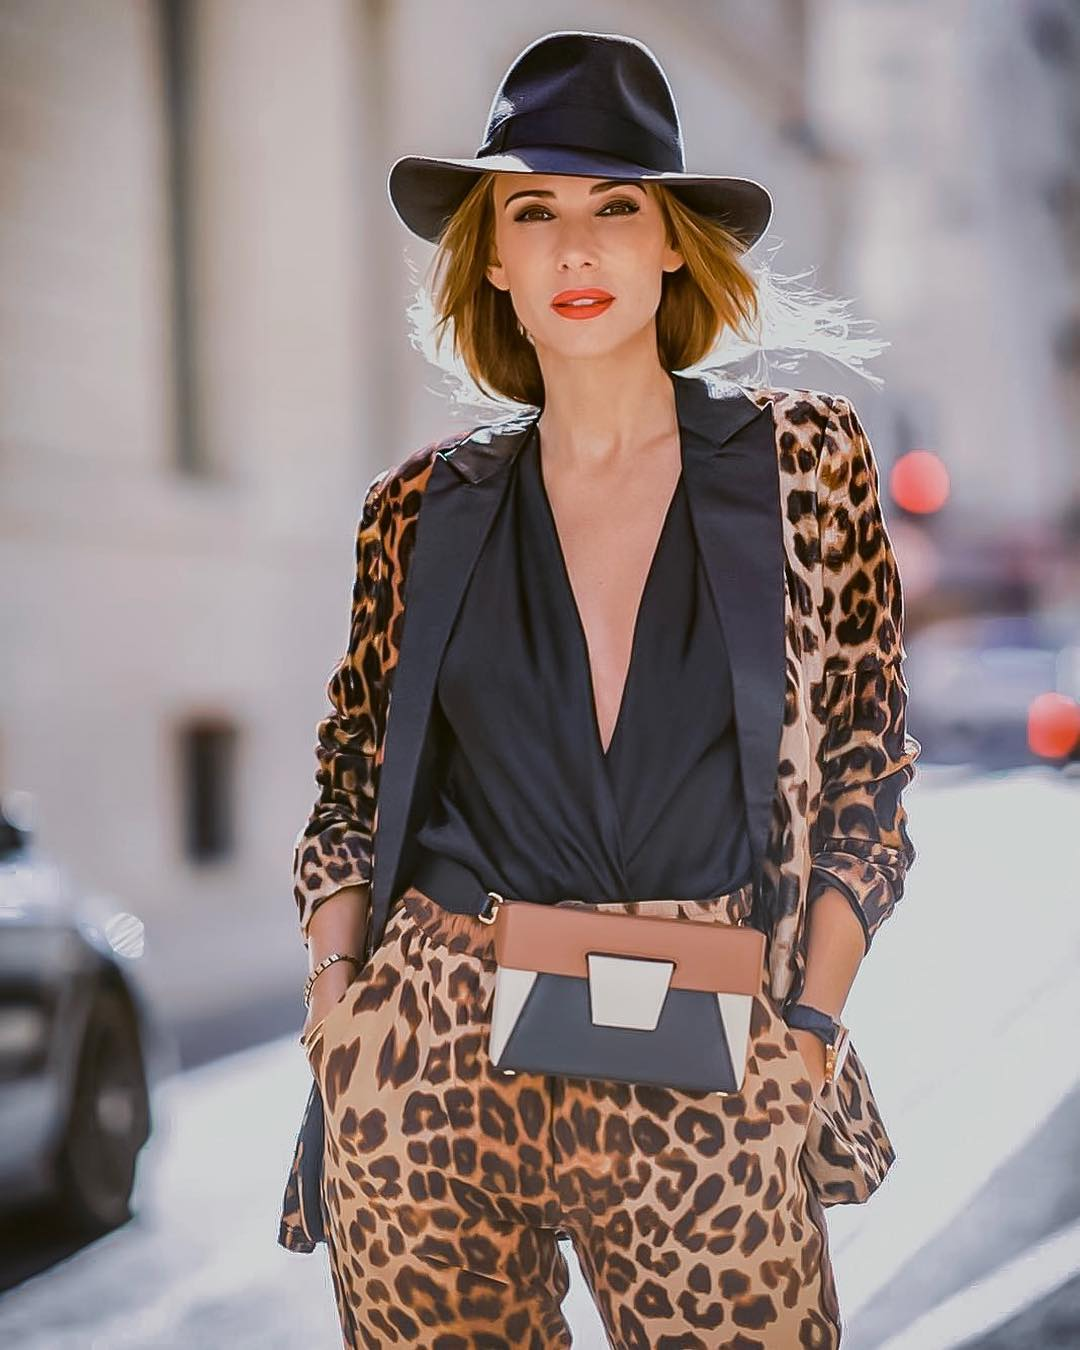 Fedora Hat With Leopard Print Suit Outfit